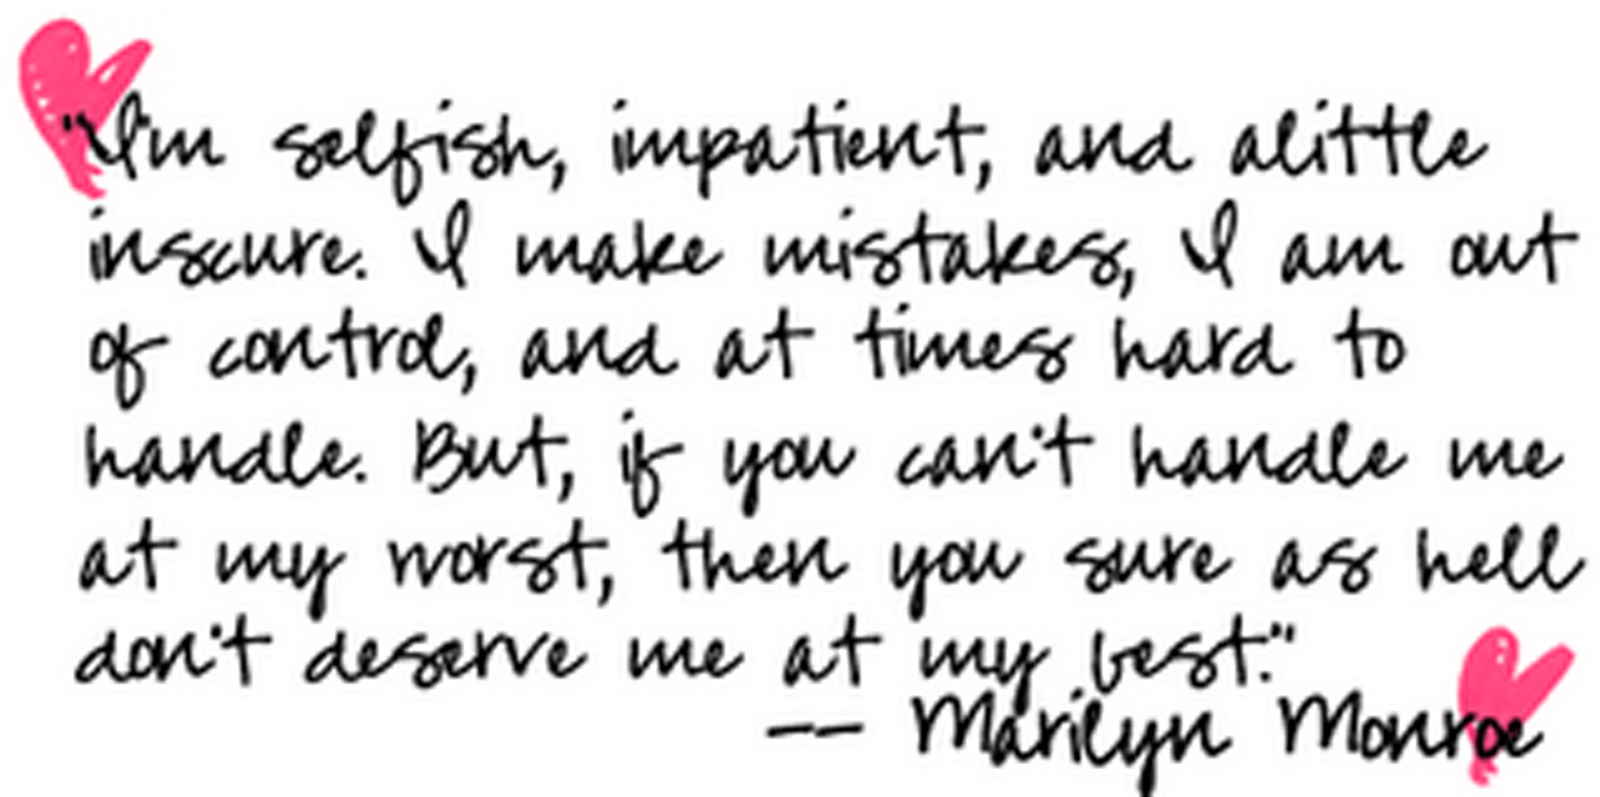 http://3.bp.blogspot.com/-lYmJGV9ZedE/Tuek8JNOteI/AAAAAAAADOw/qrBOkET384k/s1600/marilyn-monroe-quotes-women-ladies-girls-inspirations-inspire+%25285%2529.png